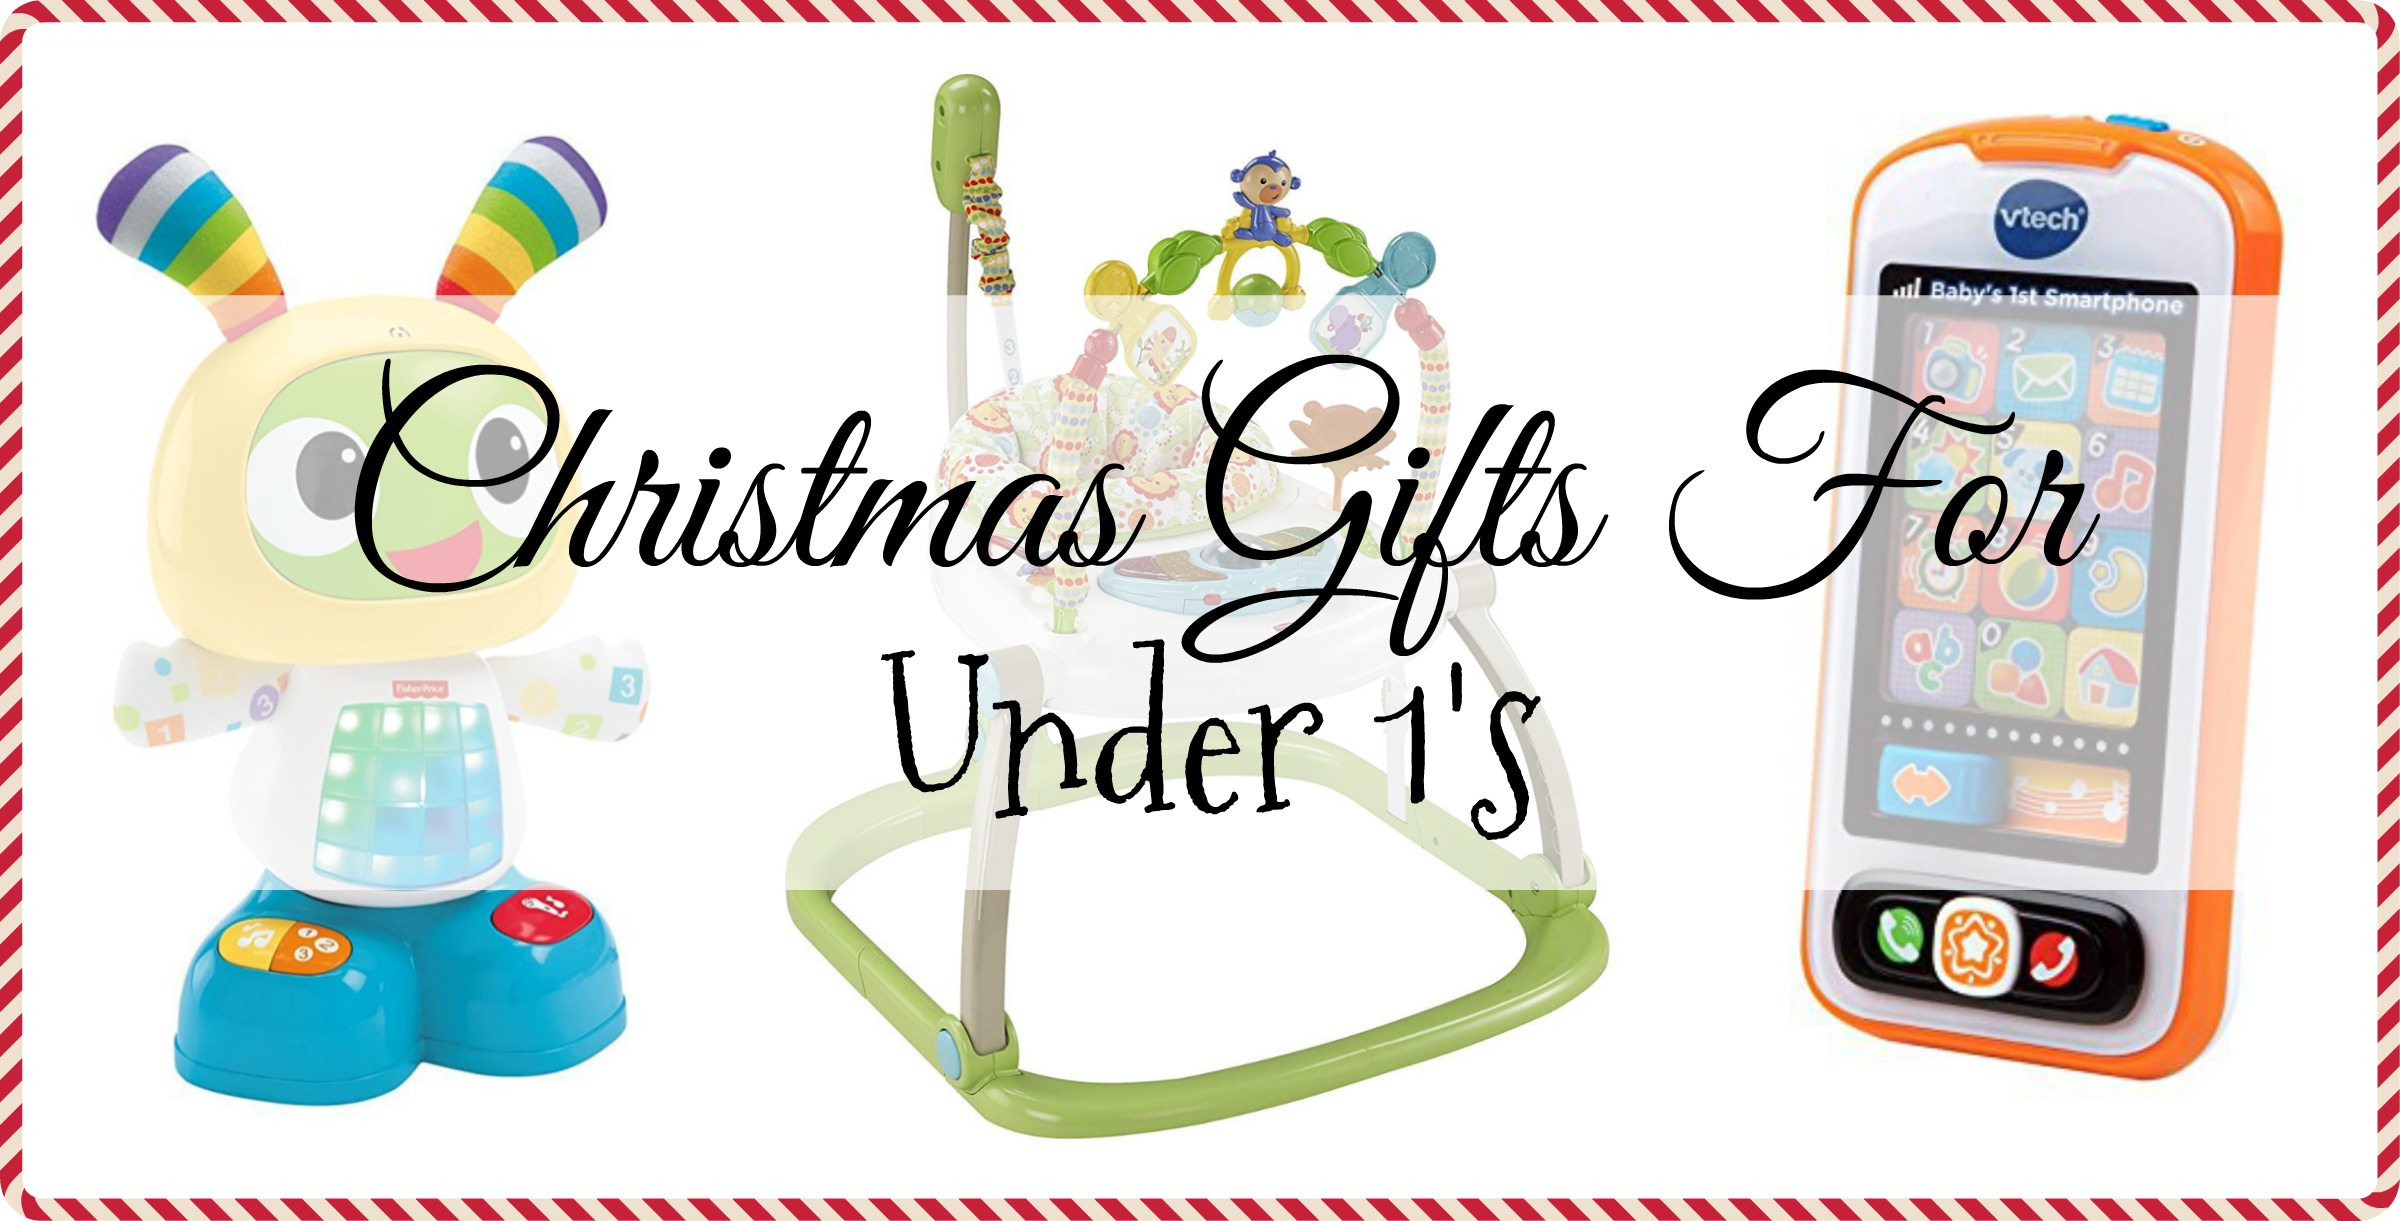 Christmas gifts for under 1s